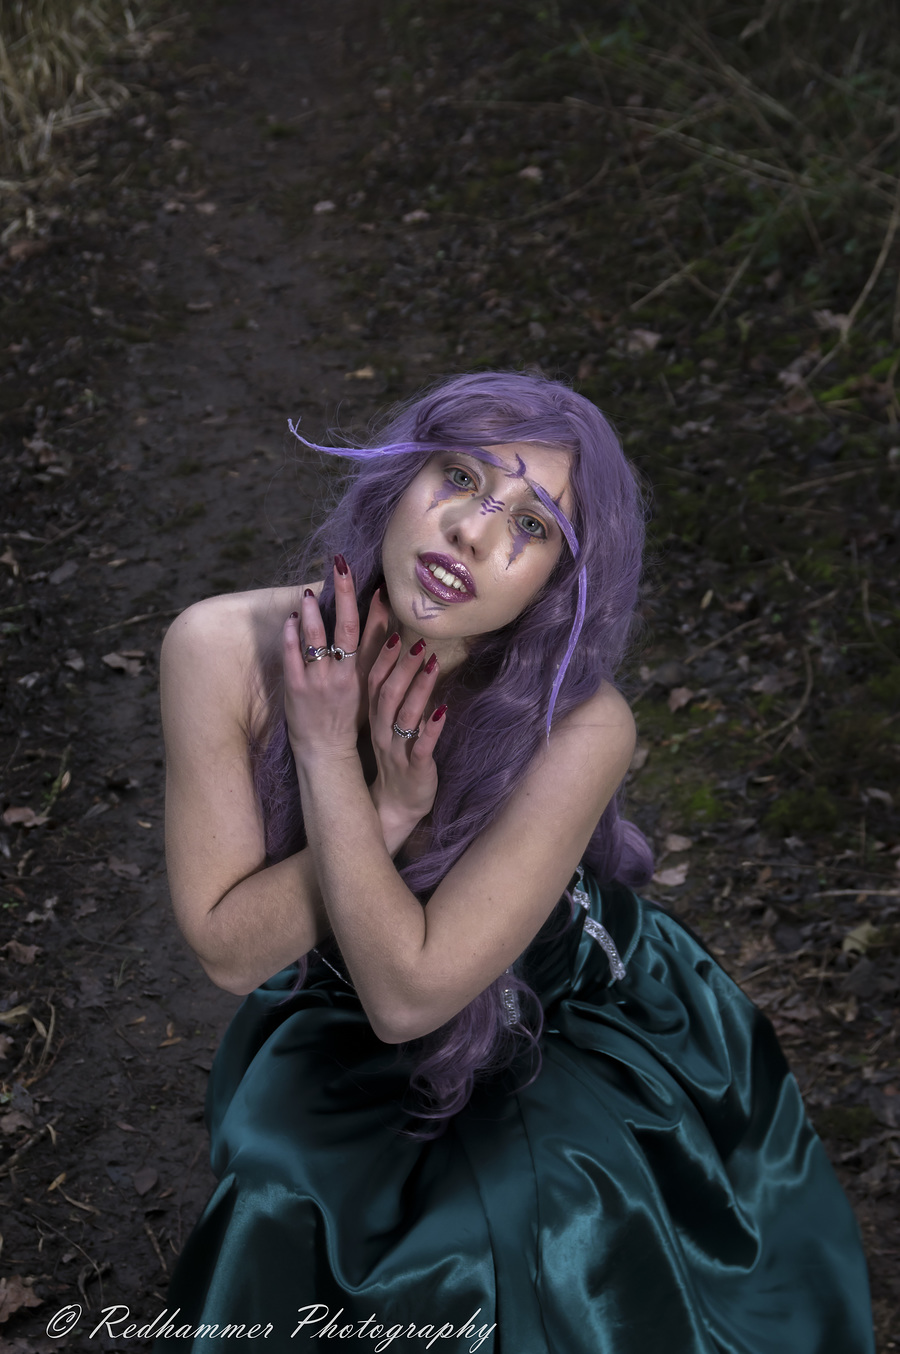 Winter elf / Photography by Redhammer / Uploaded 16th January 2019 @ 12:26 PM